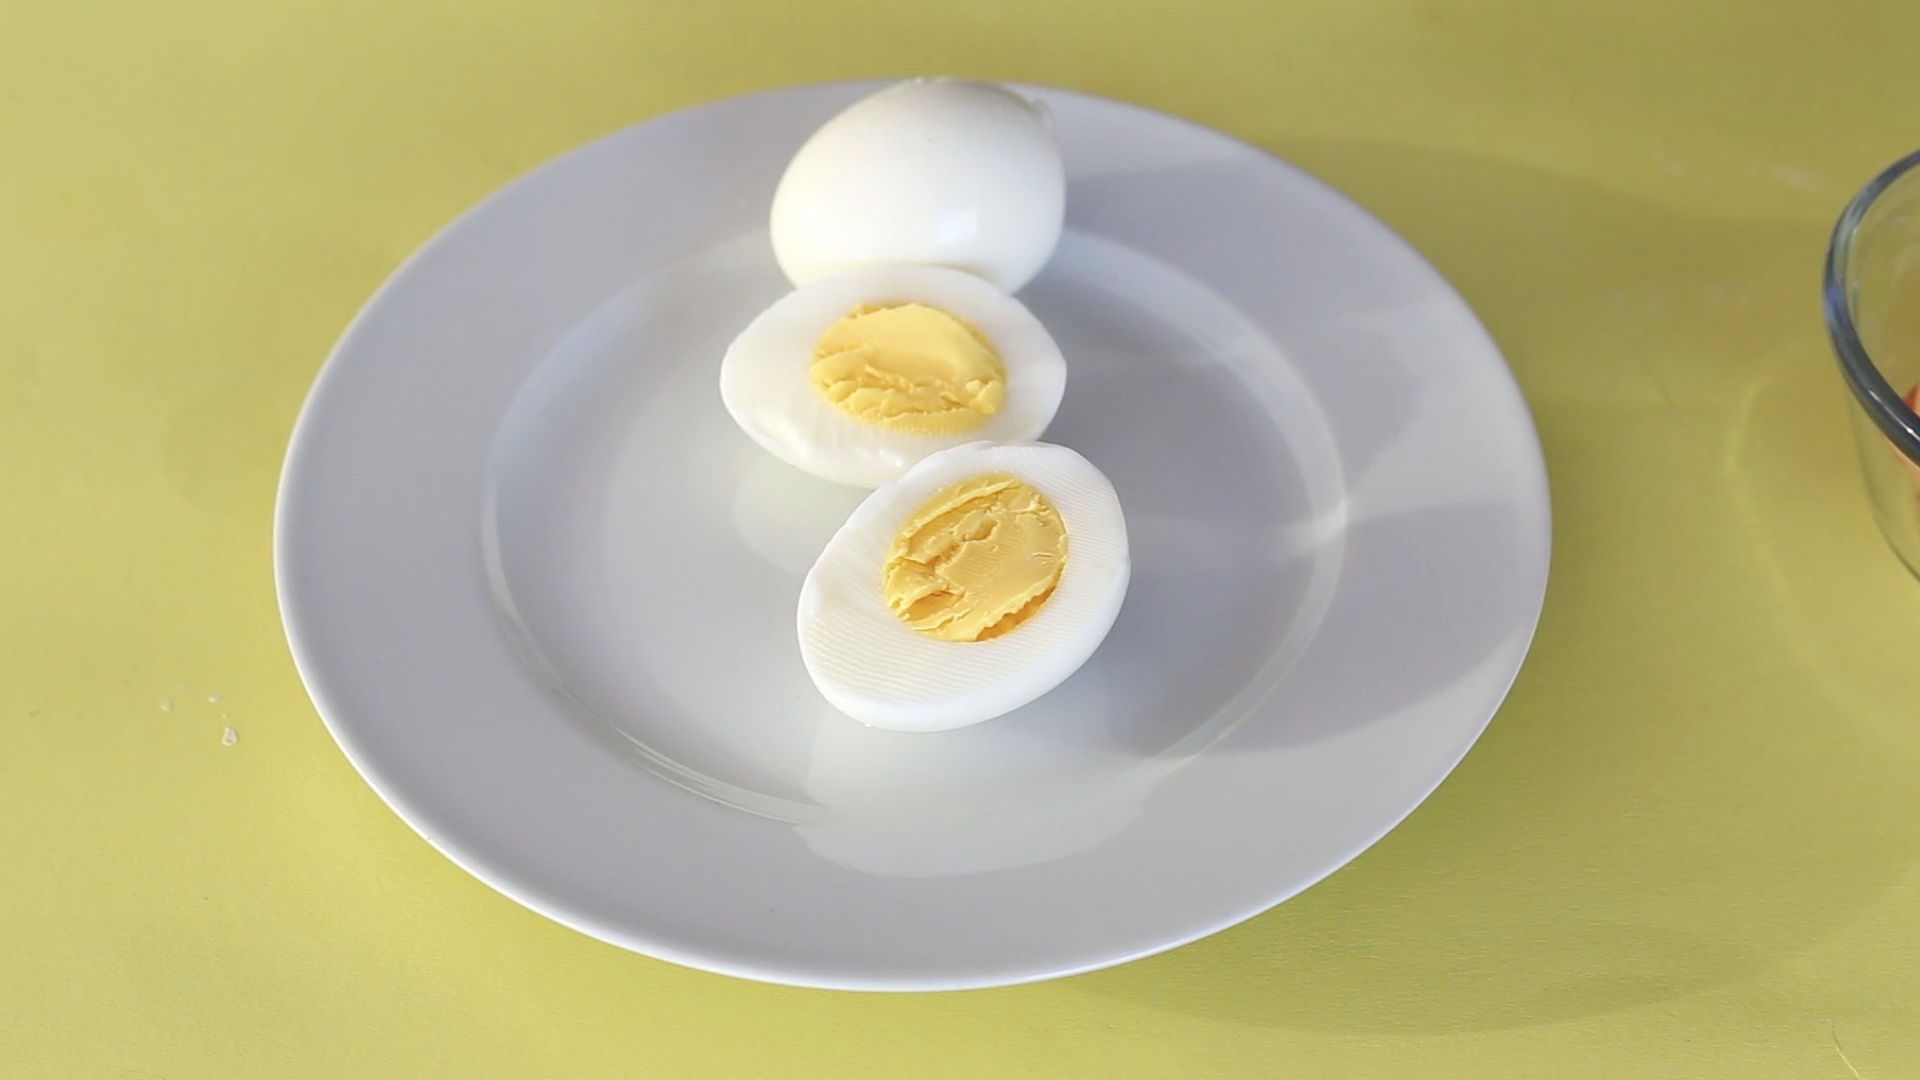 The Best Way to Make Hard-Boiled Eggs